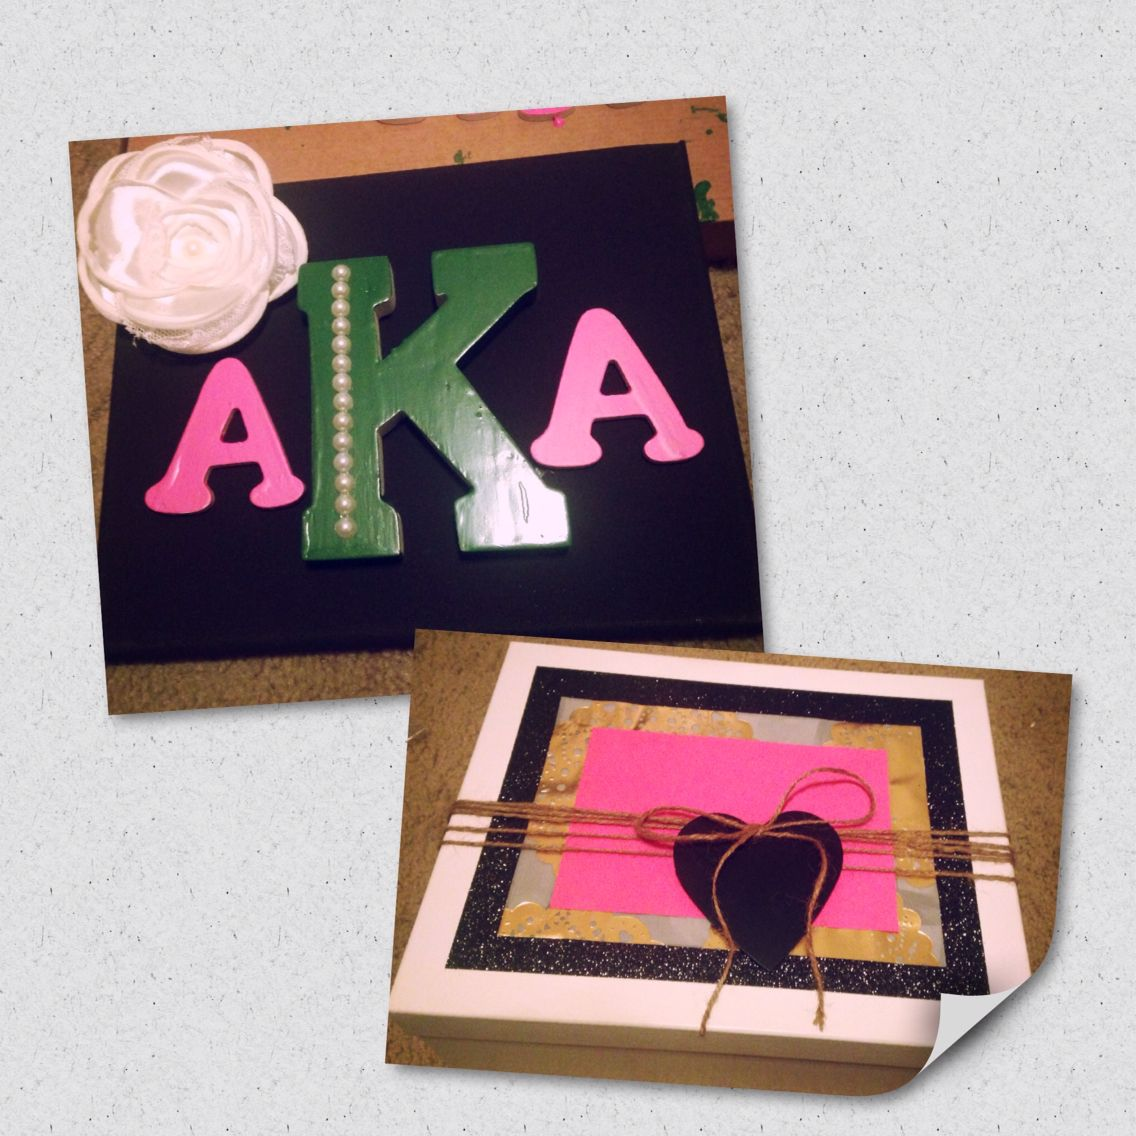 Aka sorority crafts diy by me pinterest aka sorority aka sorority crafts sorority craftsdiybuild solutioingenieria Gallery